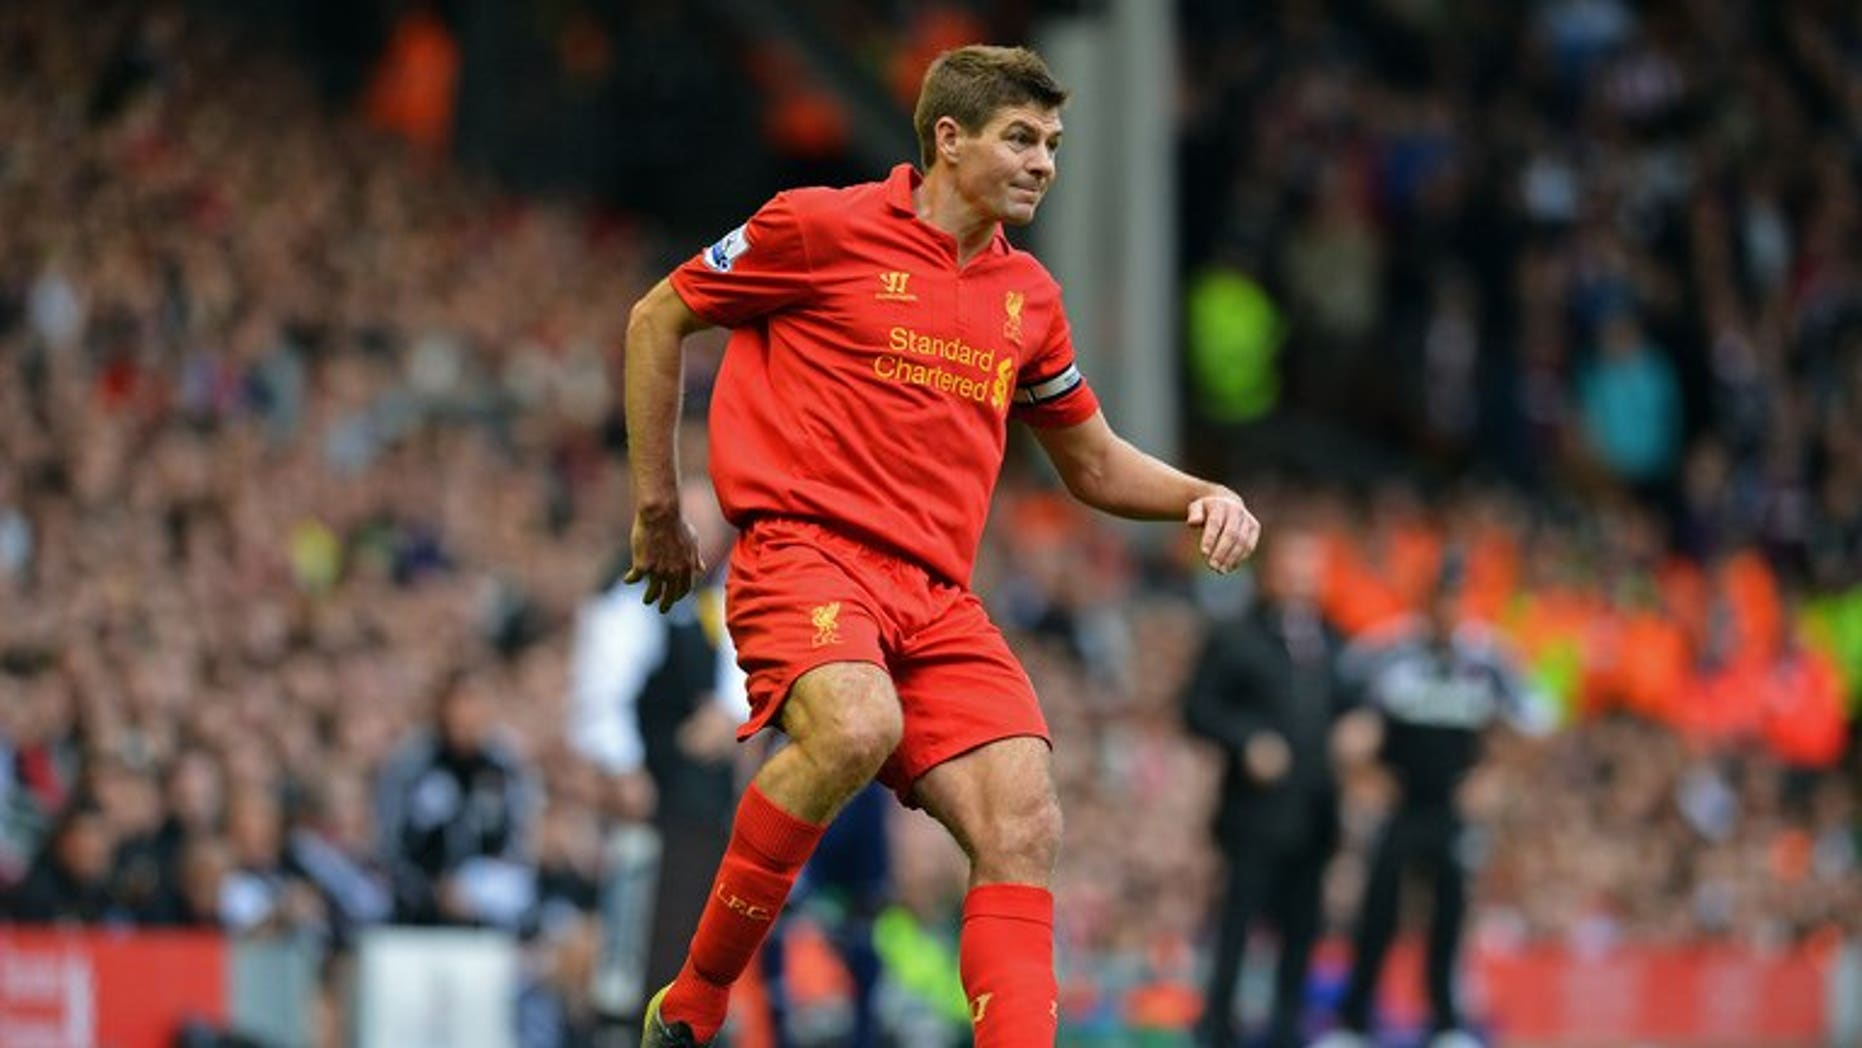 Liverpool midfielder Steven Gerrard controls the ball during a Premier League match against Stoke City at Anfield in Liverpool on October 7, 2012. Gerrard signed a new two-year contract extension with the only club he has ever played for.